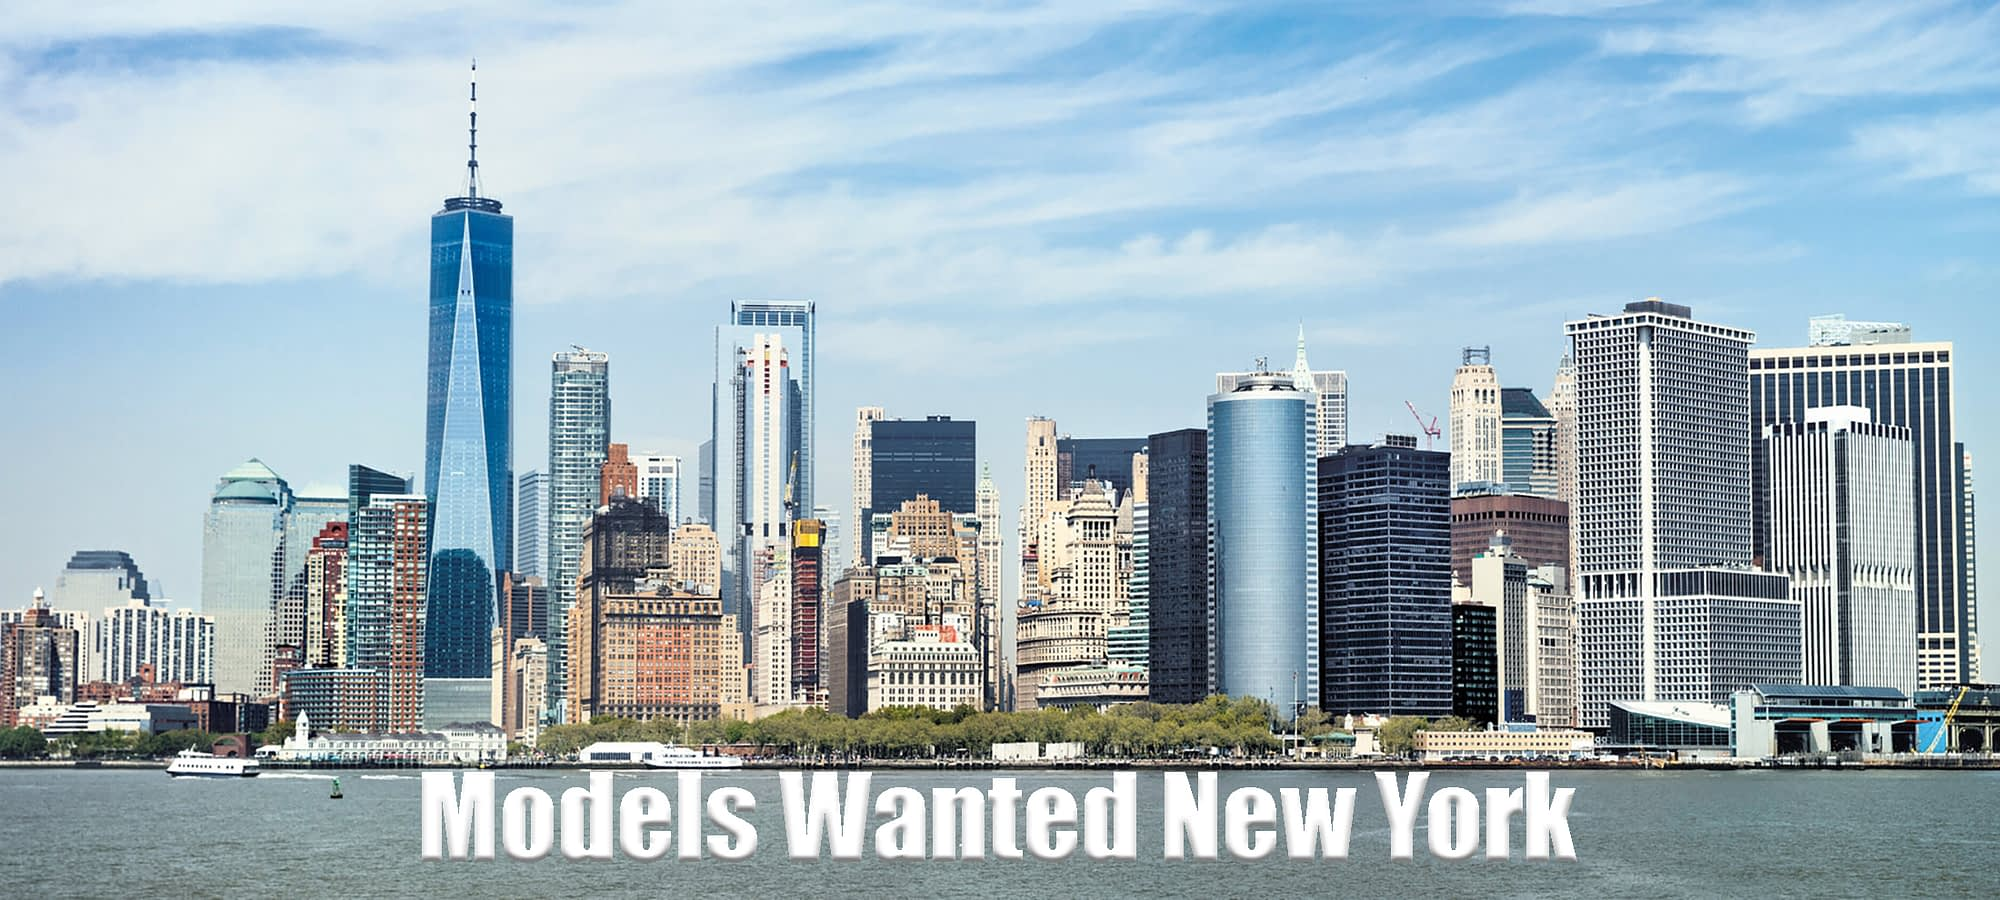 Models Wanted New York